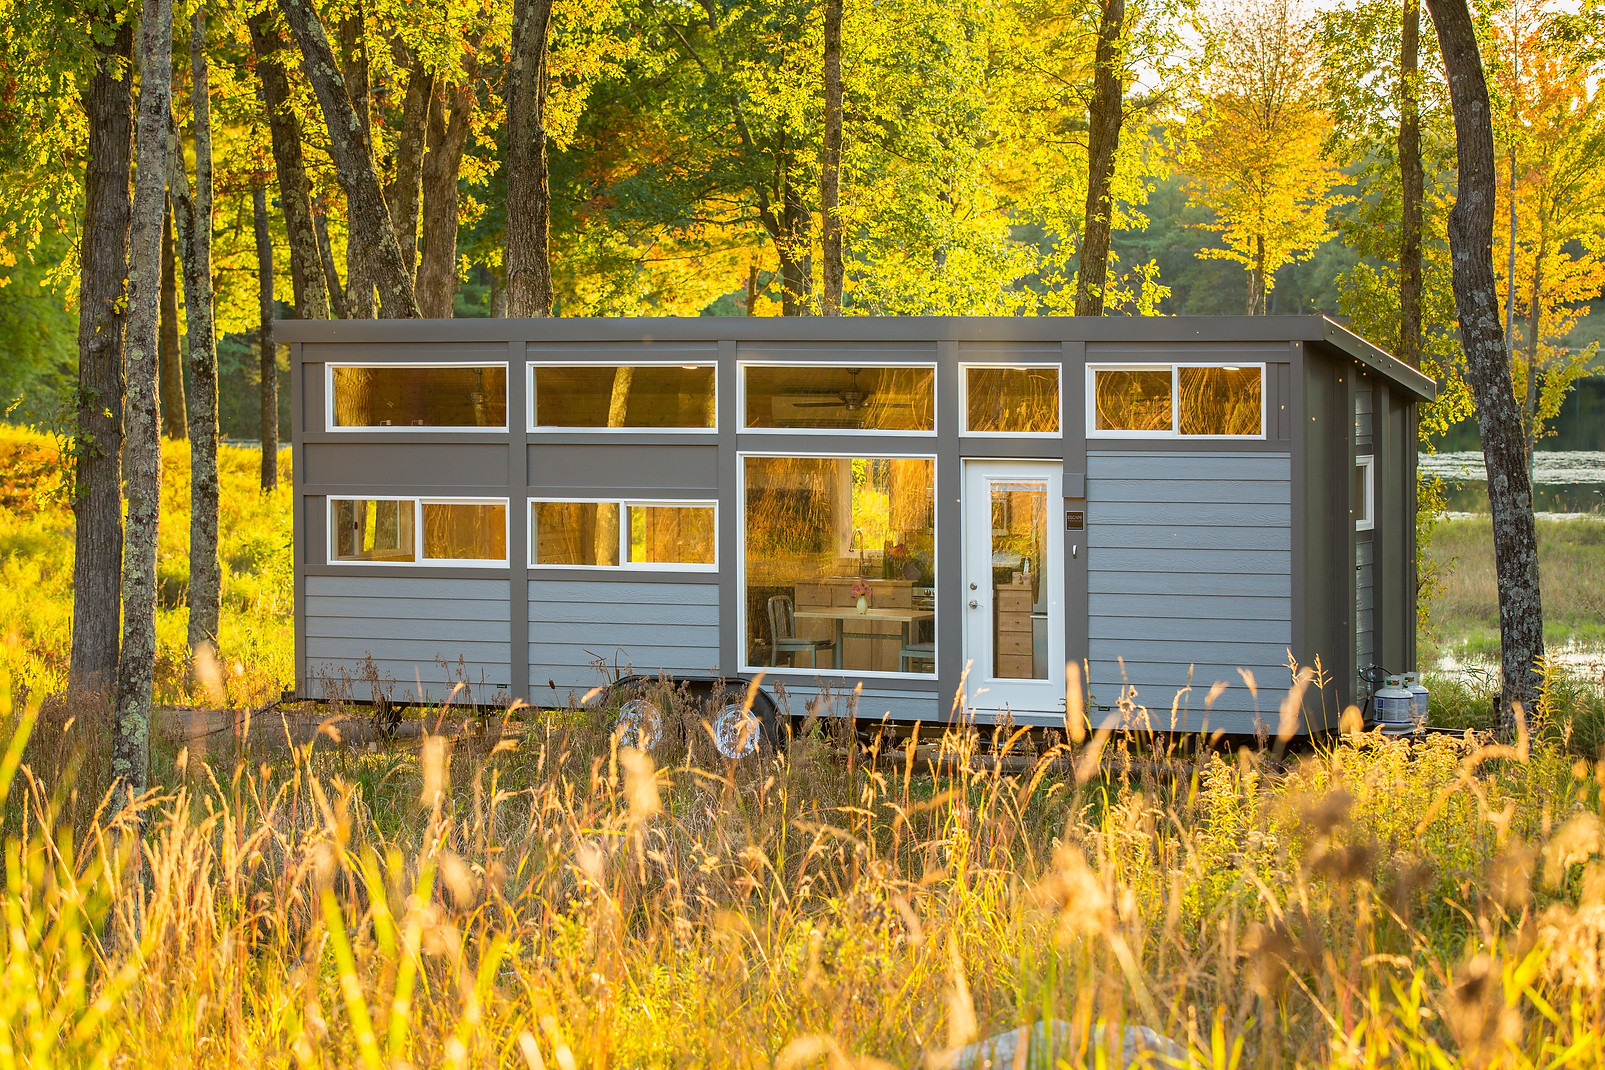 Reinventing the RV